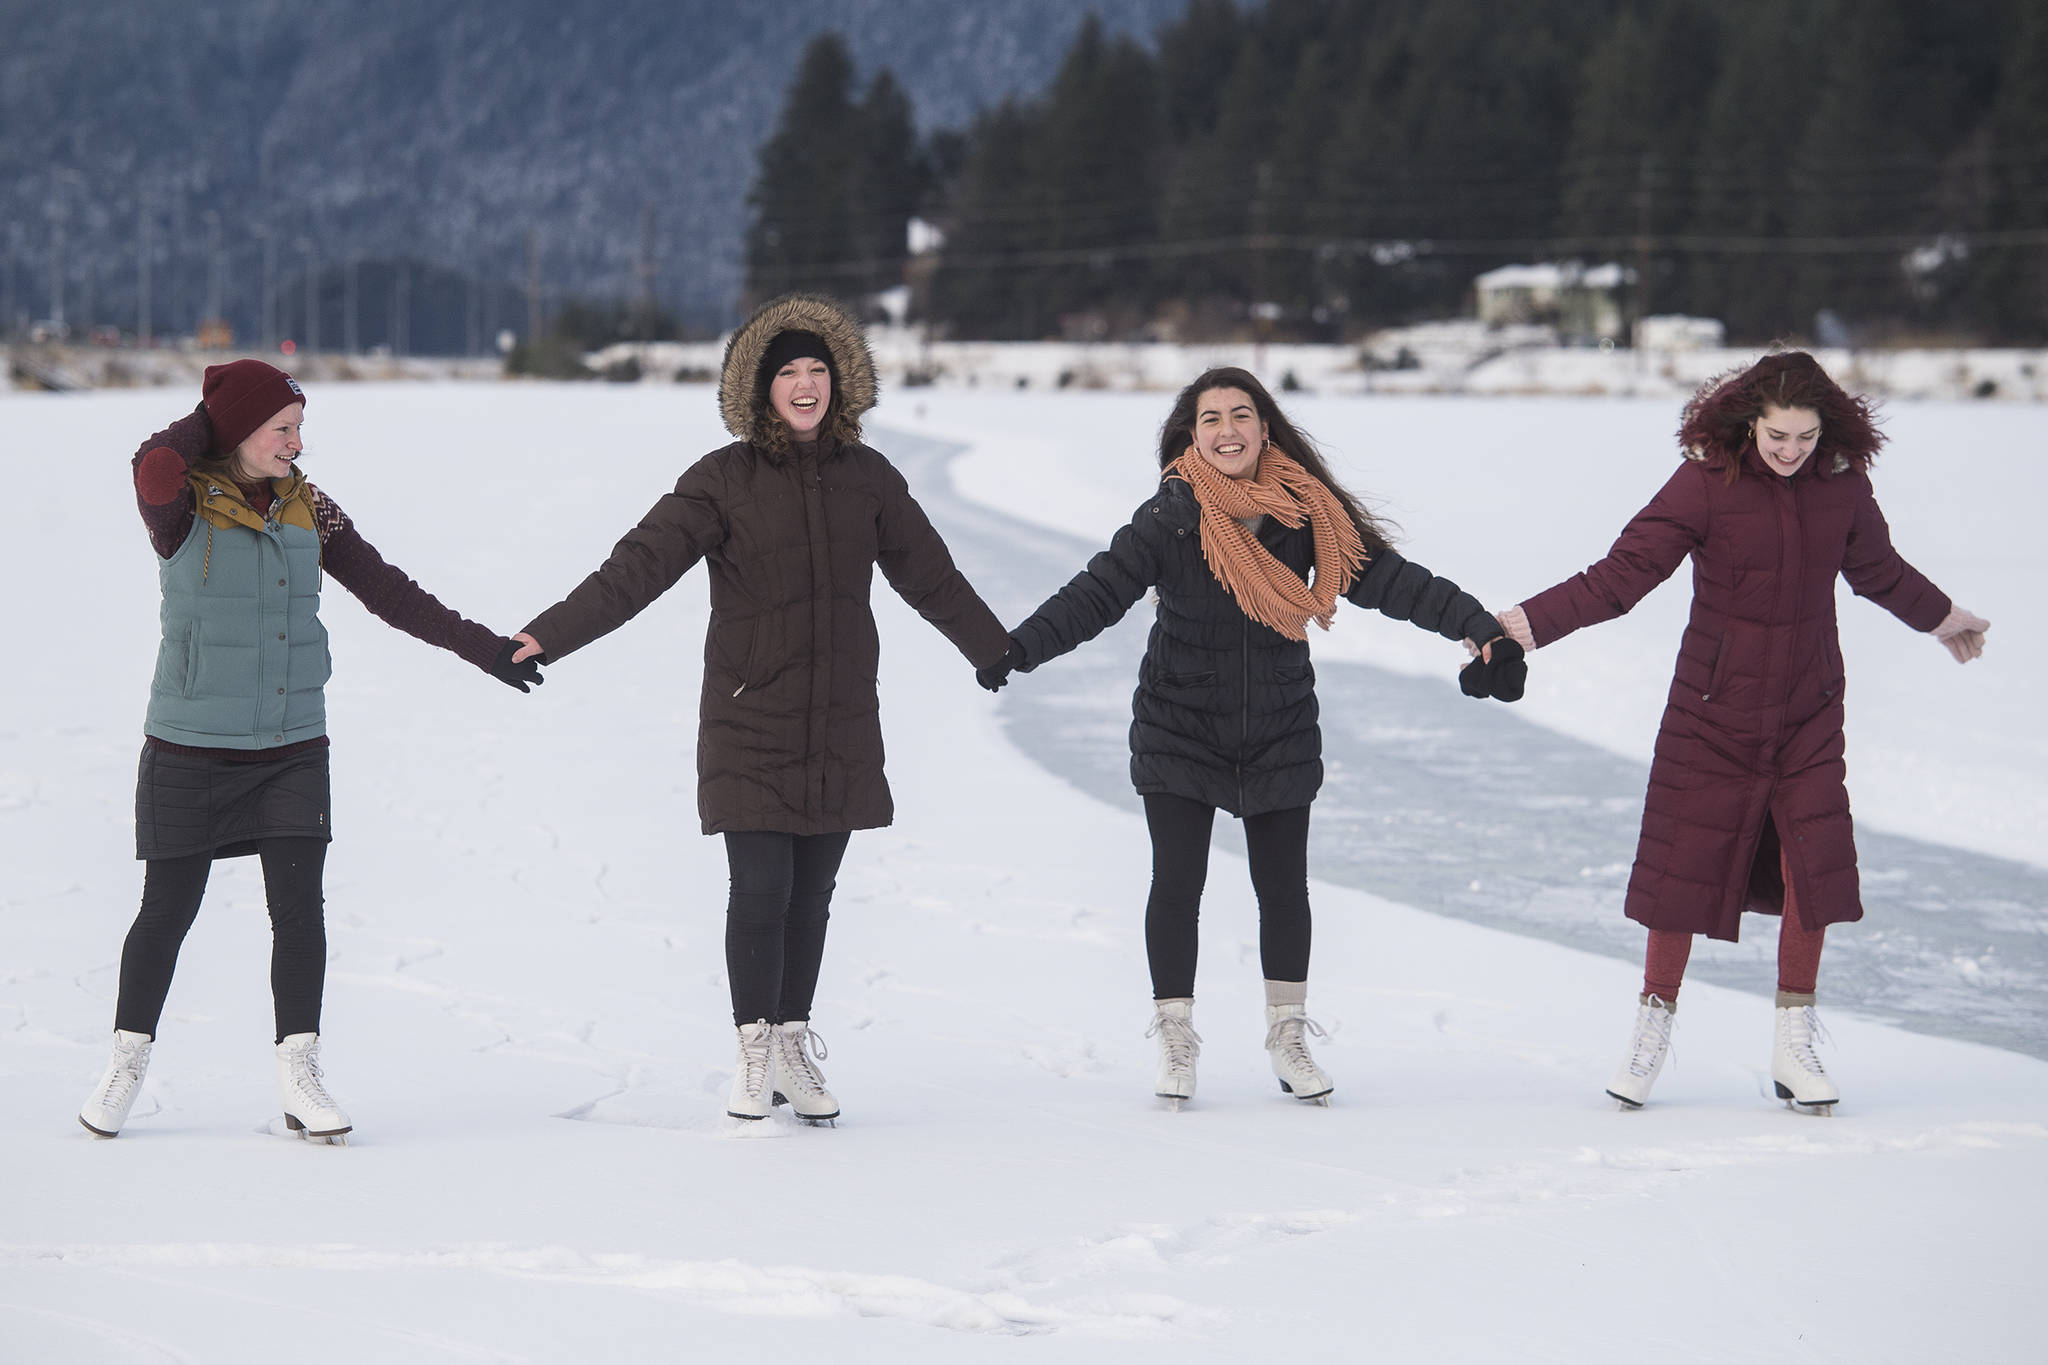 Elizabeth Ramseth, left, Bethany Bibb, Maria Jsustartari and Lydia Smith, right, take time out during the lunch hour to skate at Twin Lakes on Wednesday, Jan. 8, 2019. (Michael Penn | Juneau Empire)